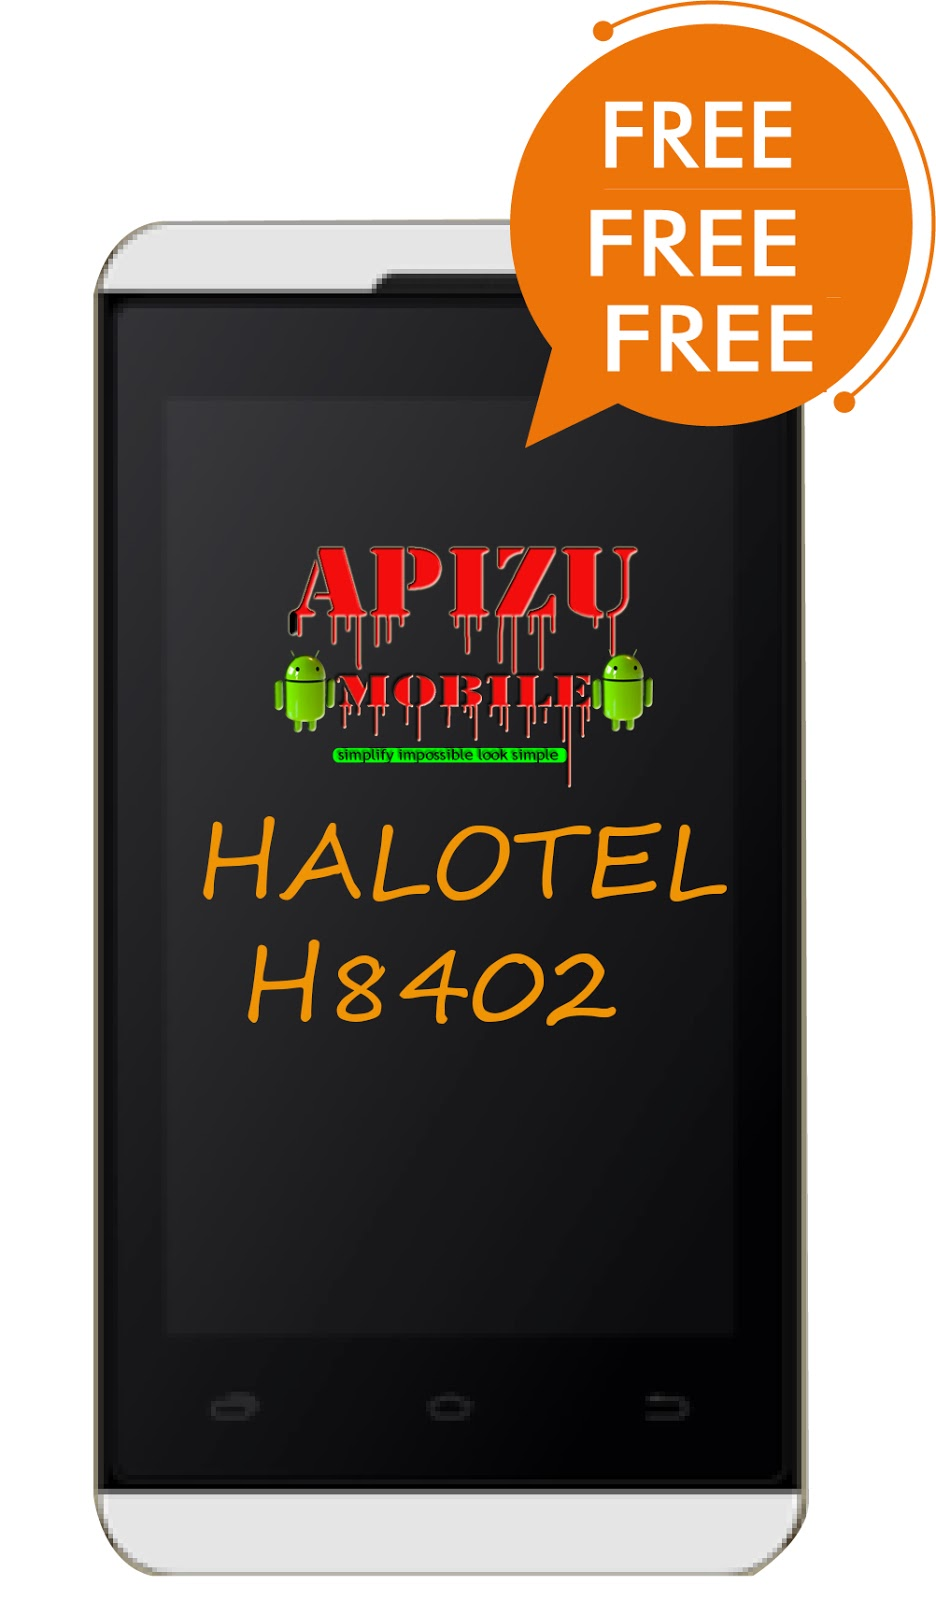 FREE DOWNLOAD HALOTEL H8402 UNLOCKED FIRMWARE 2018 TESTED by aPiZU